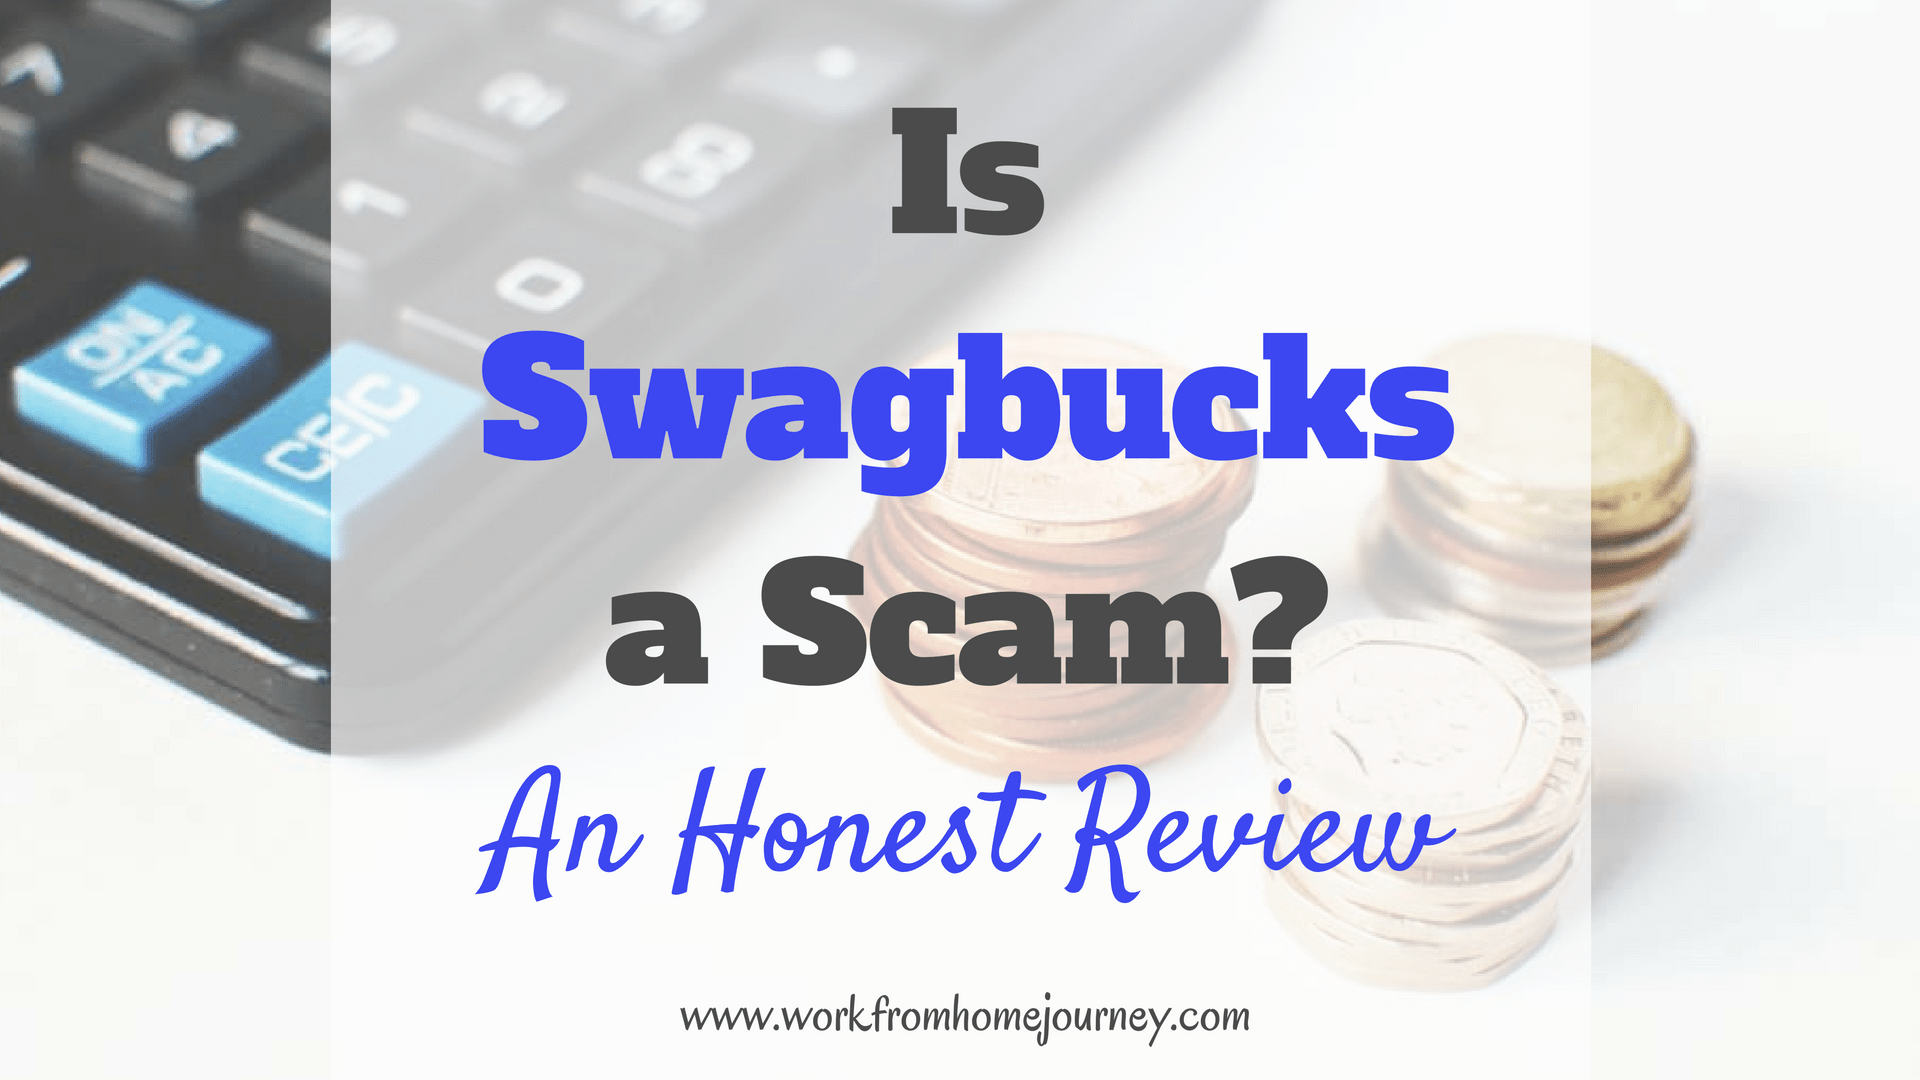 Is Swagbucks a Scam? An Honest Review